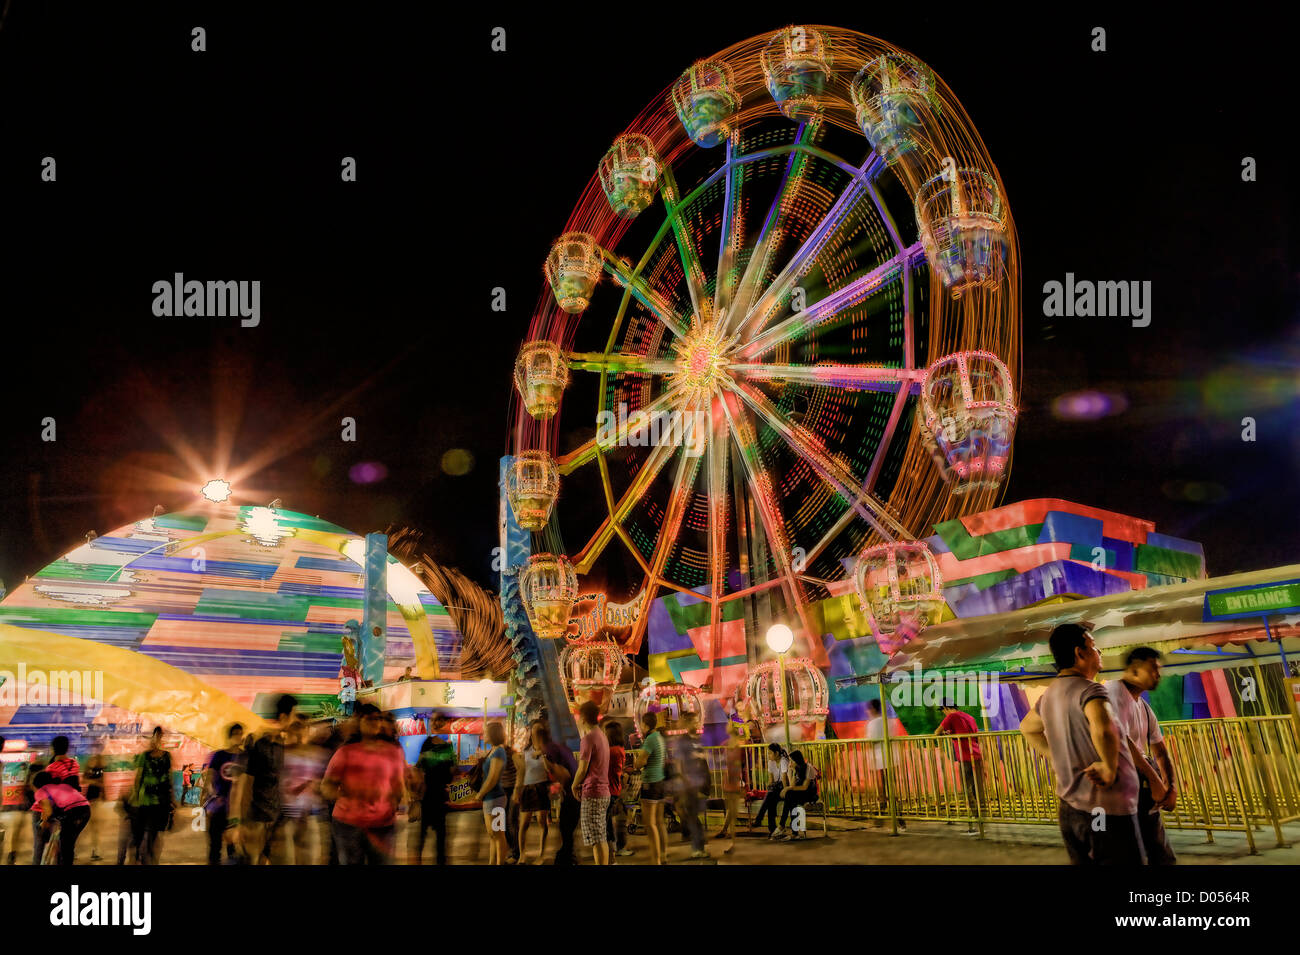 Creative collage of a night scene at Star City, Manila, Philippines using HDR and motion blur. - Stock Image